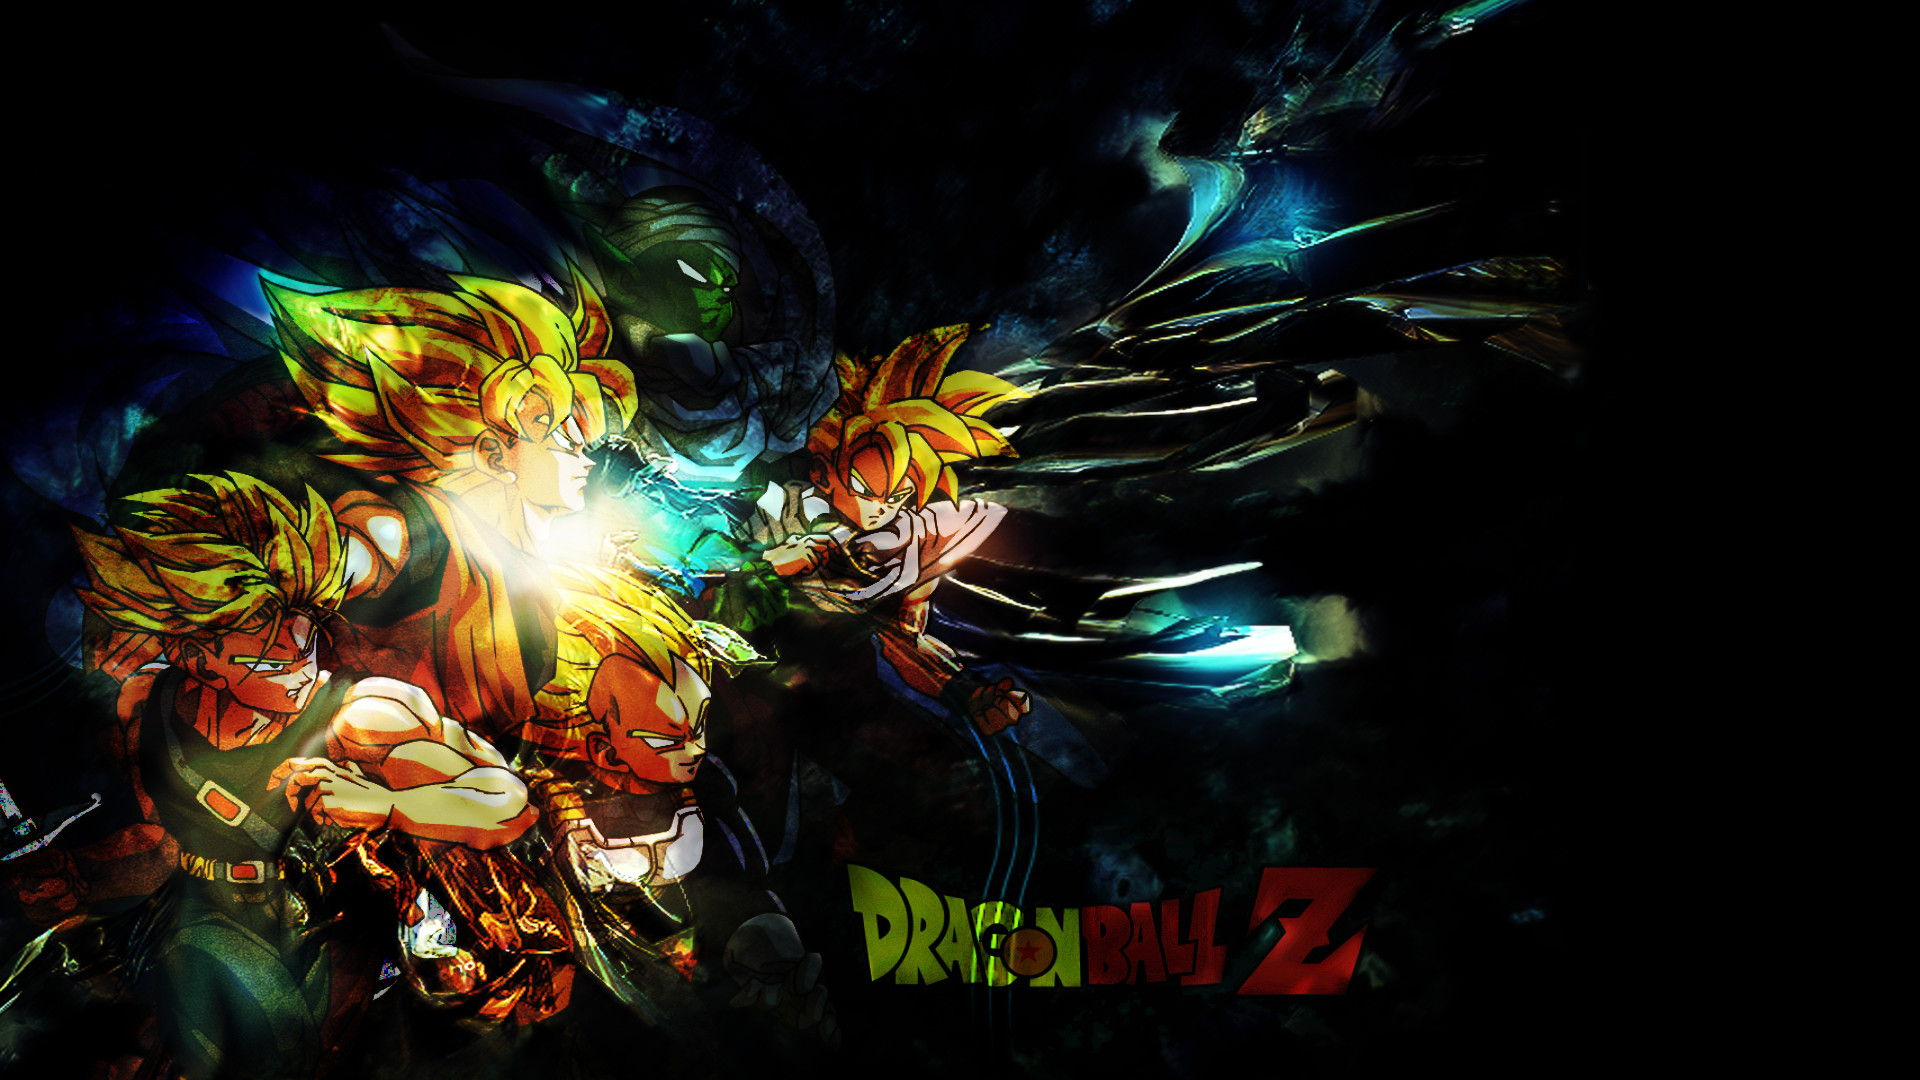 1920x1080 ... Dragonball Z PS3 Wallpaper by The-Potara-Fusion